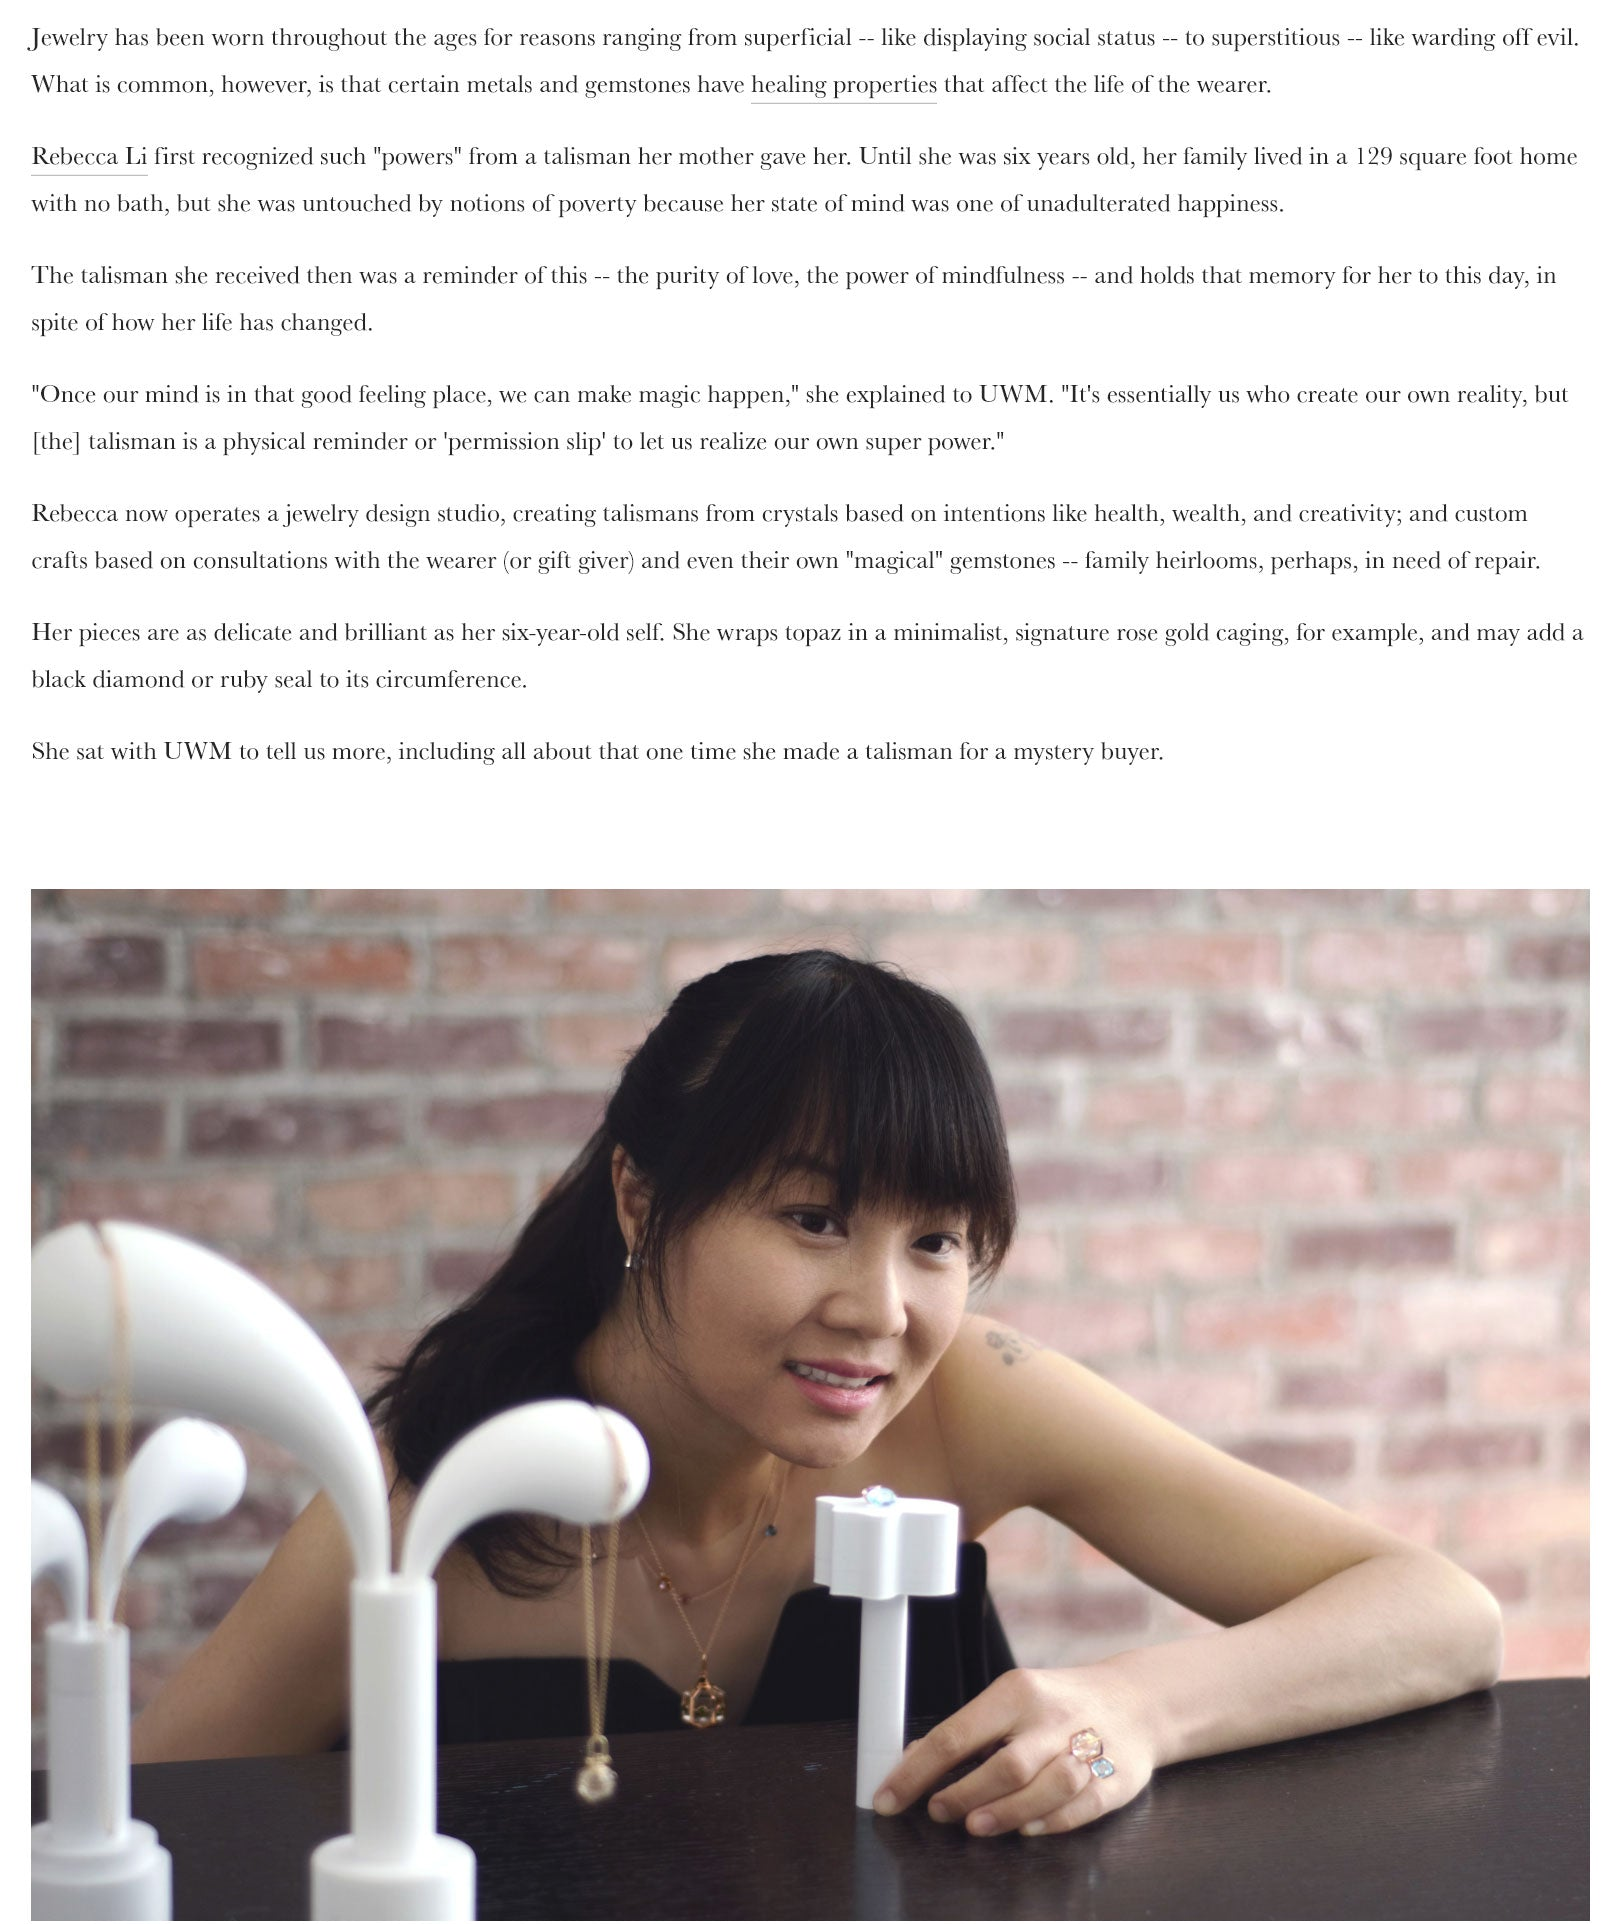 Interview with Urban Wellness Mag